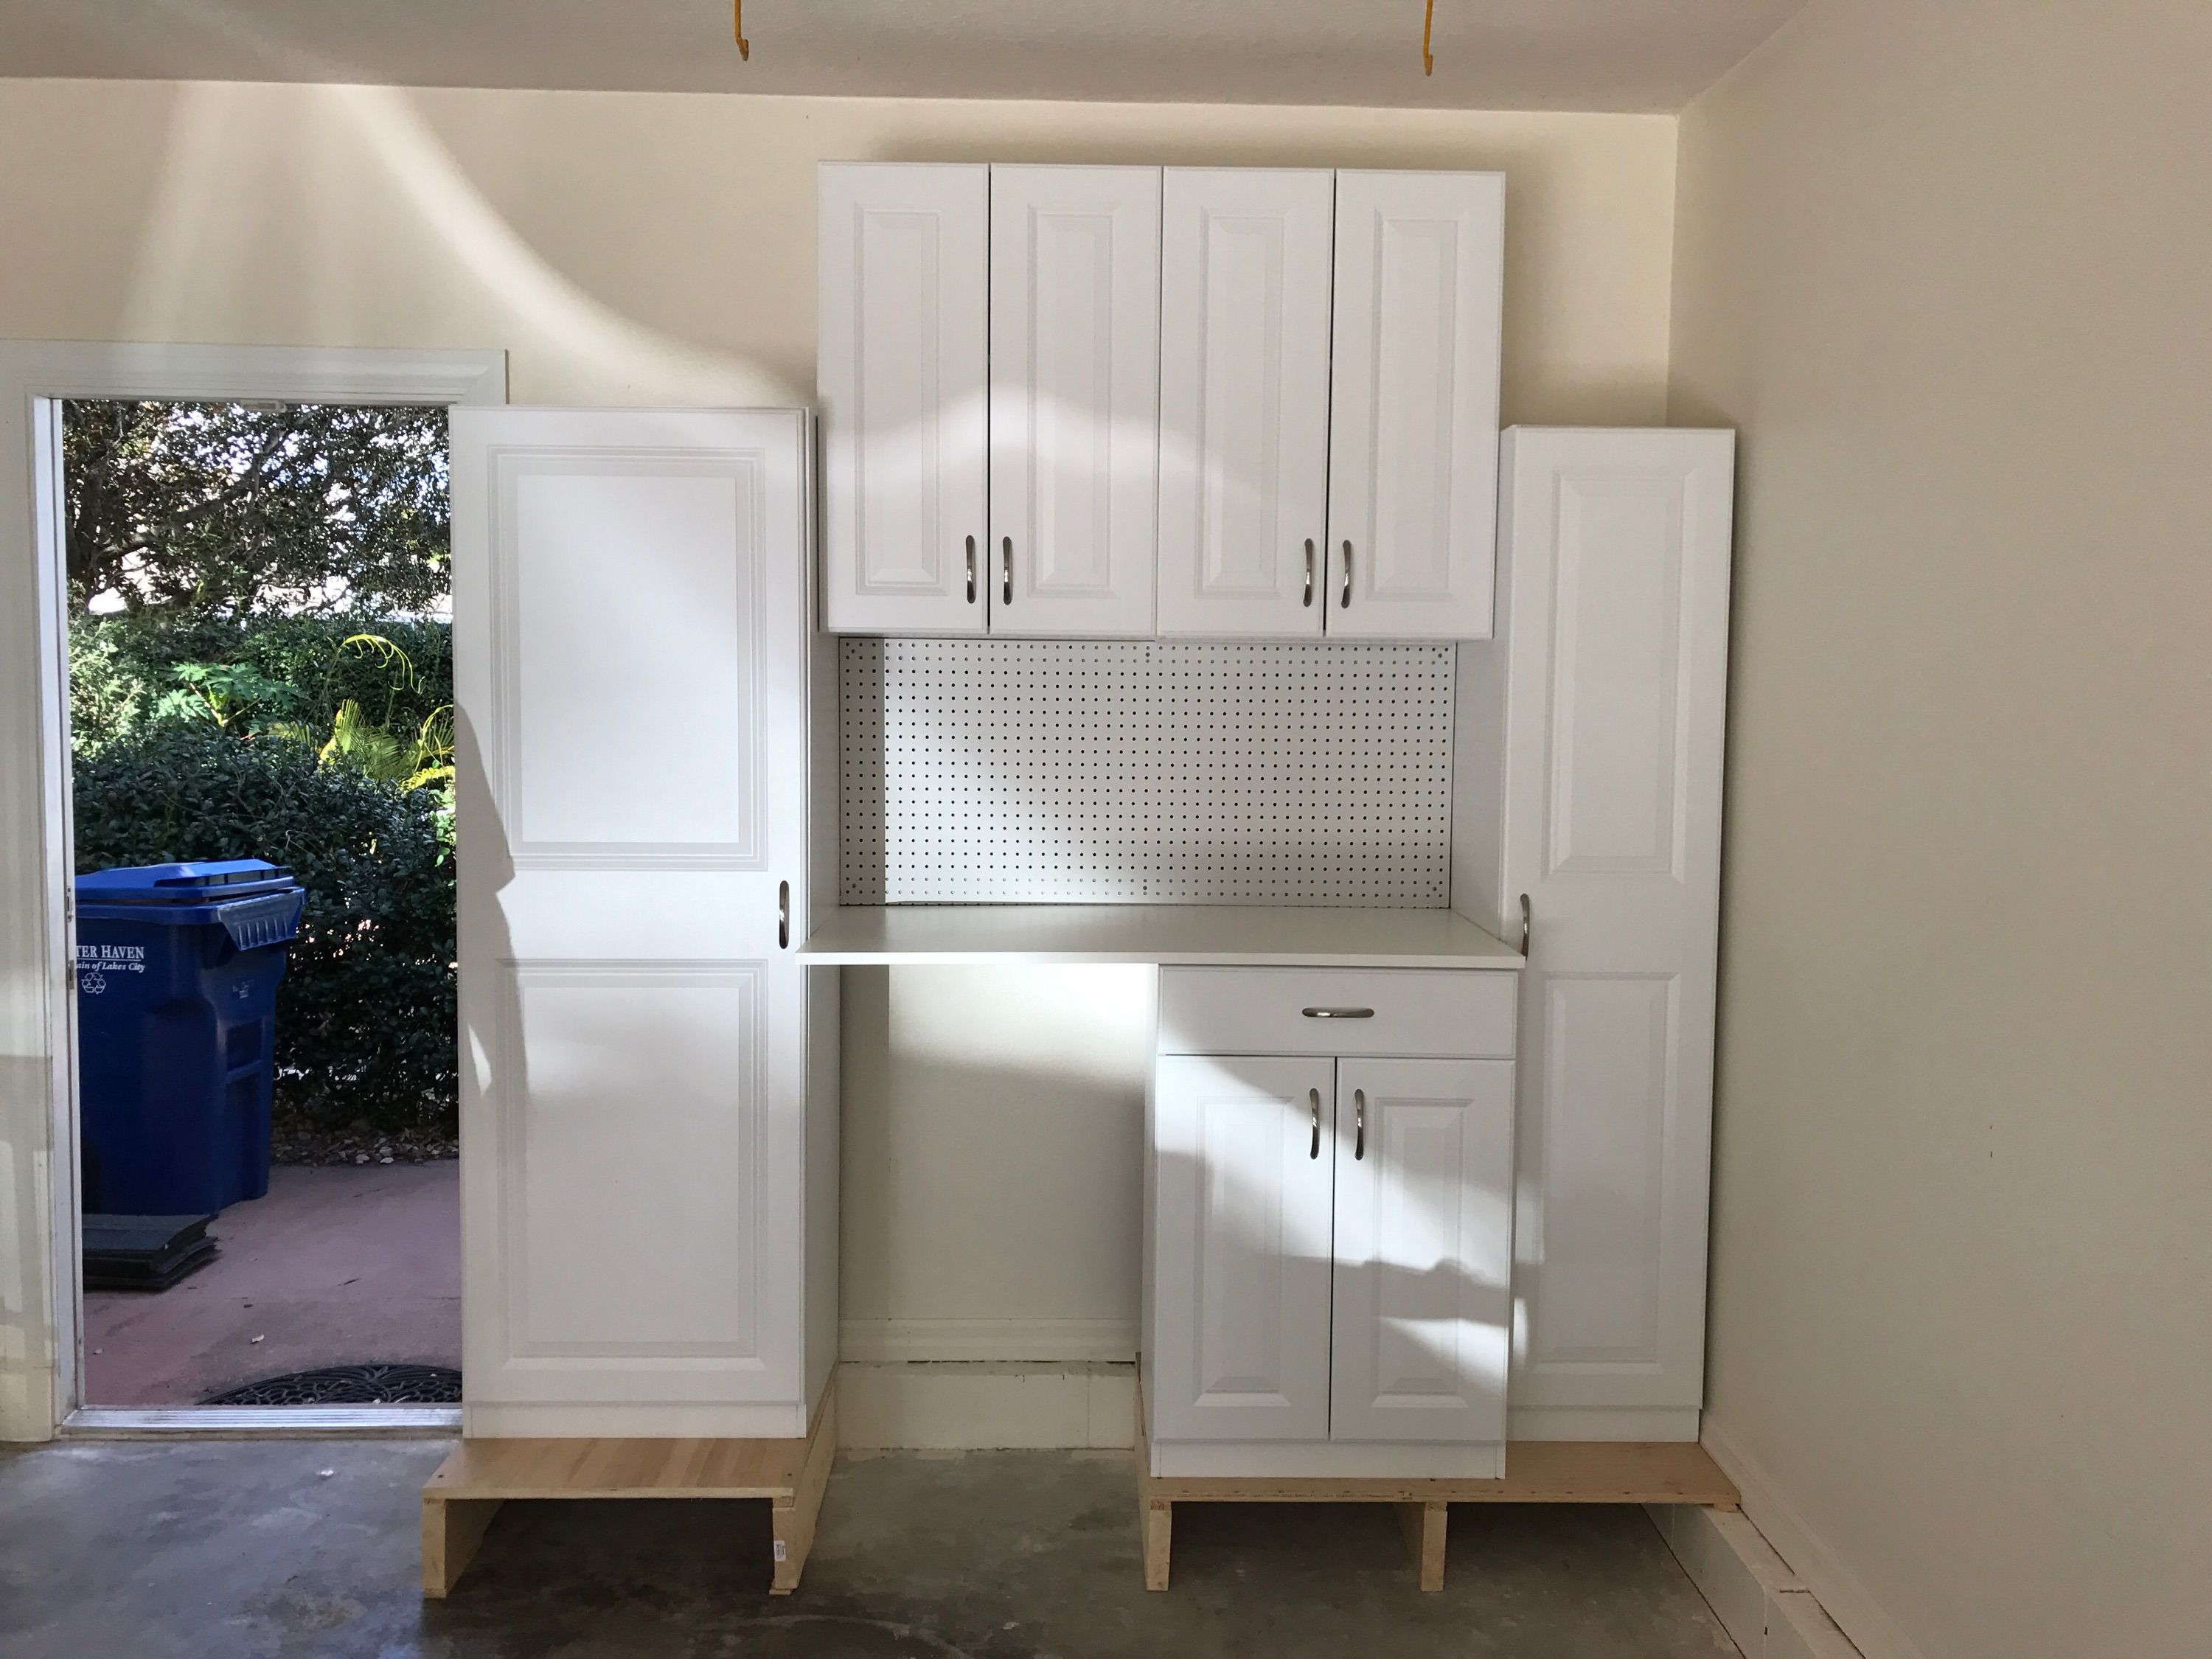 Estate Cabinets By Rsi From Lowe S Nice Storage Cabinets In My Garage Laundry Room Storage Cabinet Laundry Room Storage Garage Laundry